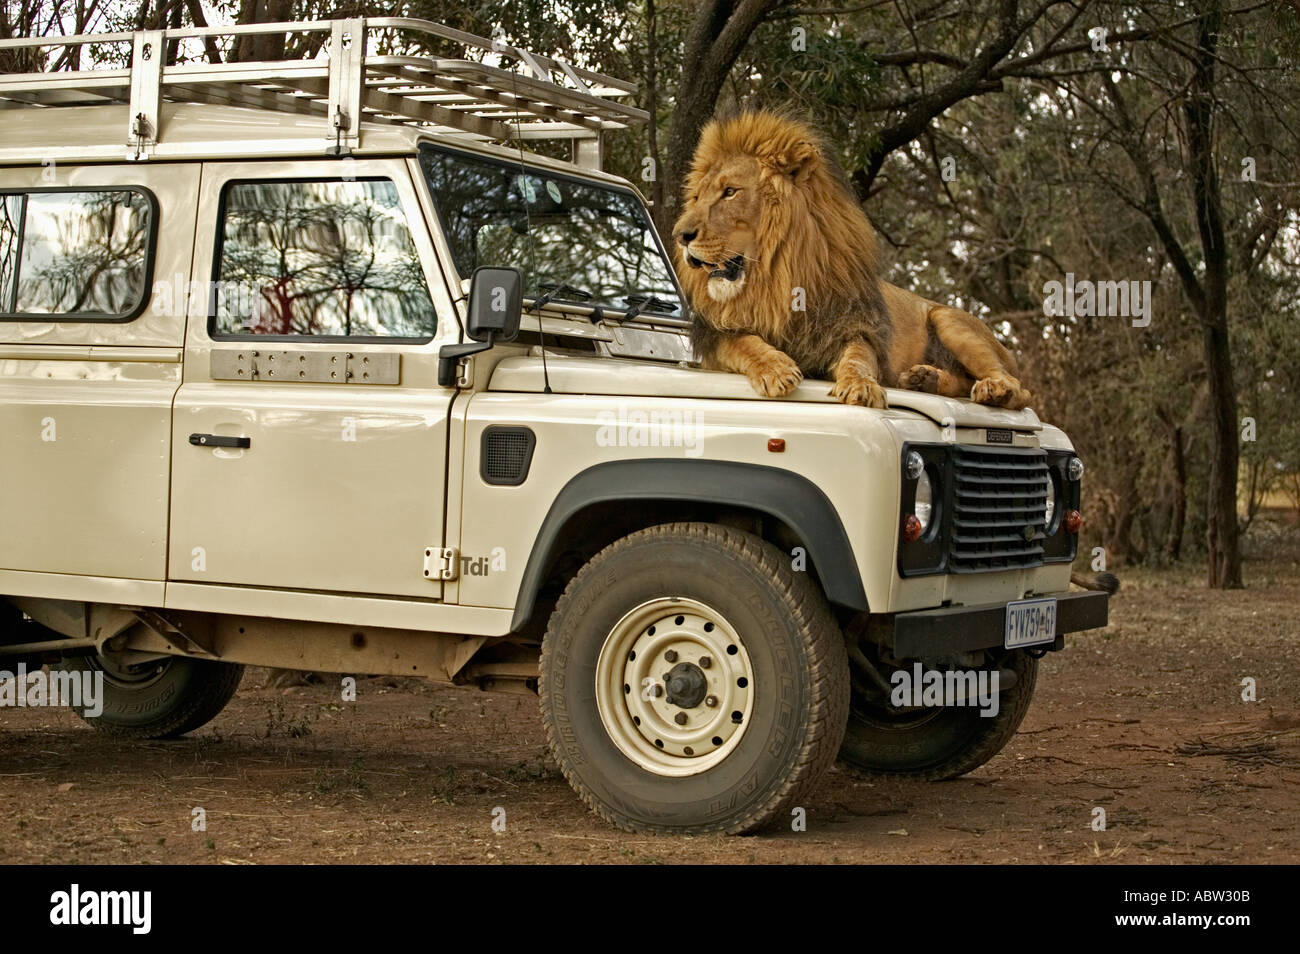 Lion Panthera leo Lion looking through window of tourist vehicle Model released South Africa Dist Sub saharan Africa - Stock Image